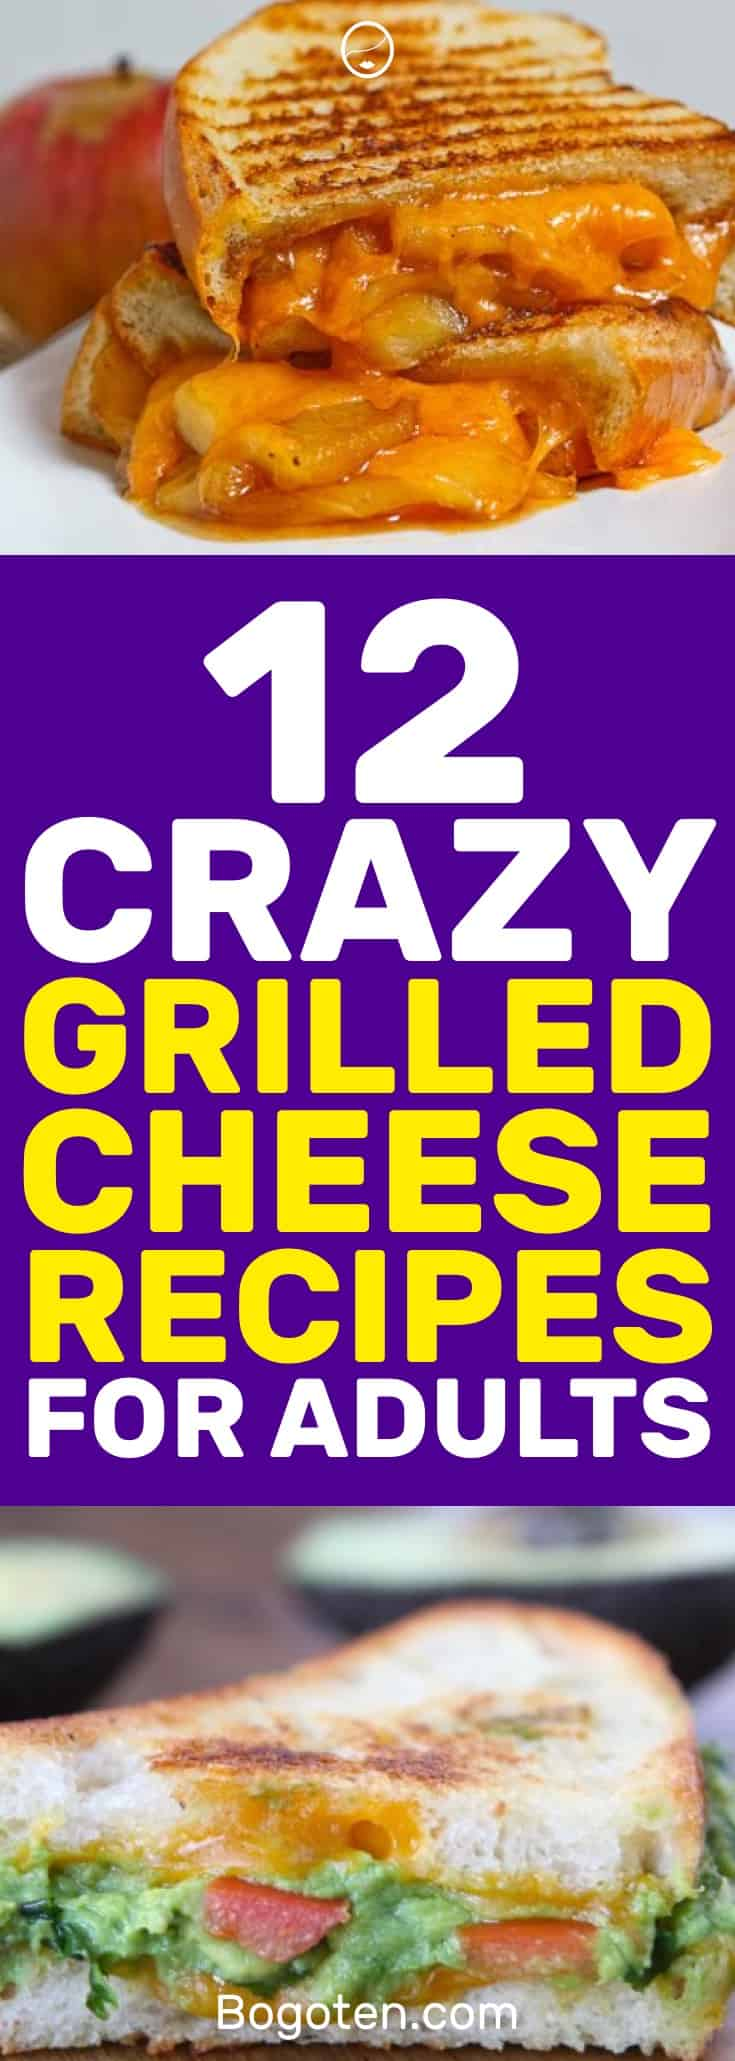 I wanted a grilled cheese sandwich and found these crazy recipes to try out. Looking forward to trying all 12 grilled cheese recipes. #Food #Cooking #SandwichIdeas